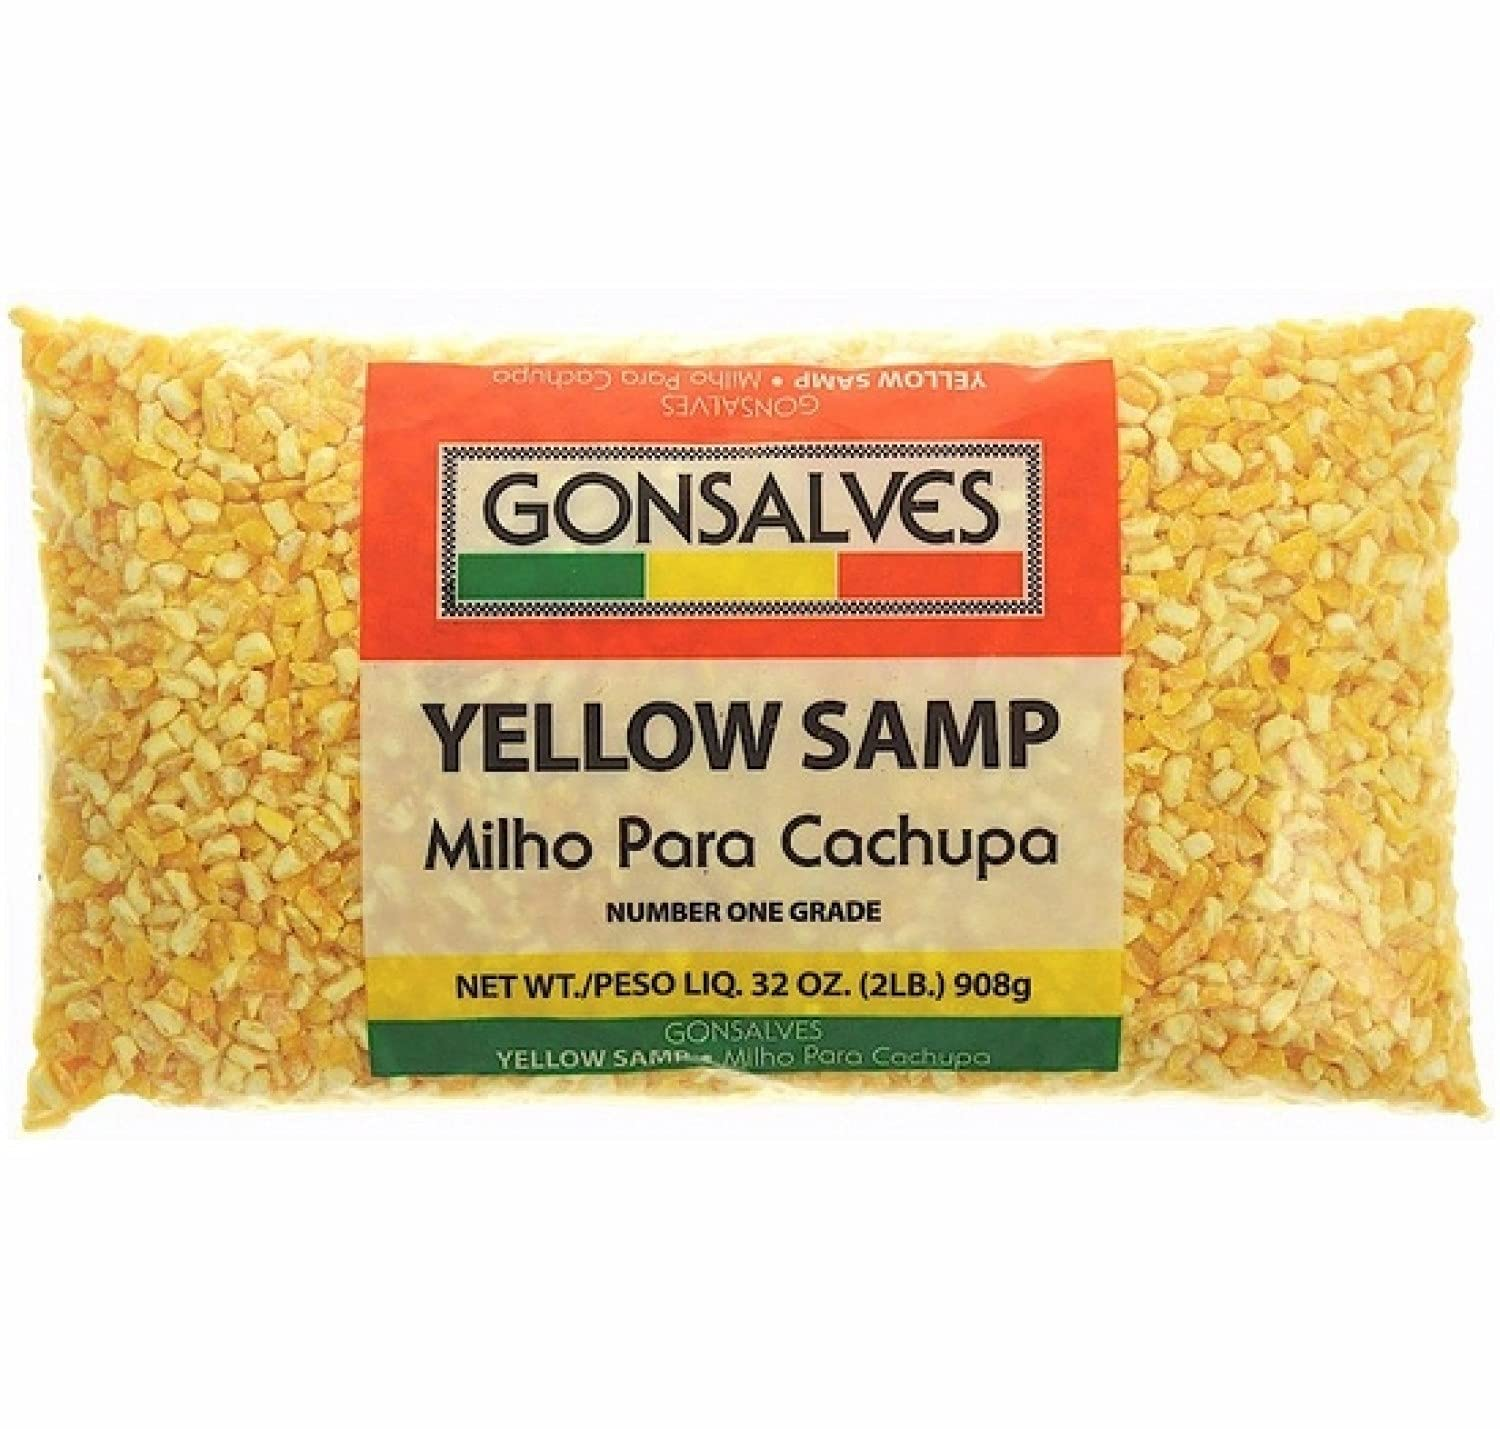 Gonsalves YELLOW SAMP Milho Para Yellow CO Dried HOMINY Cachupa 35% Time sale OFF